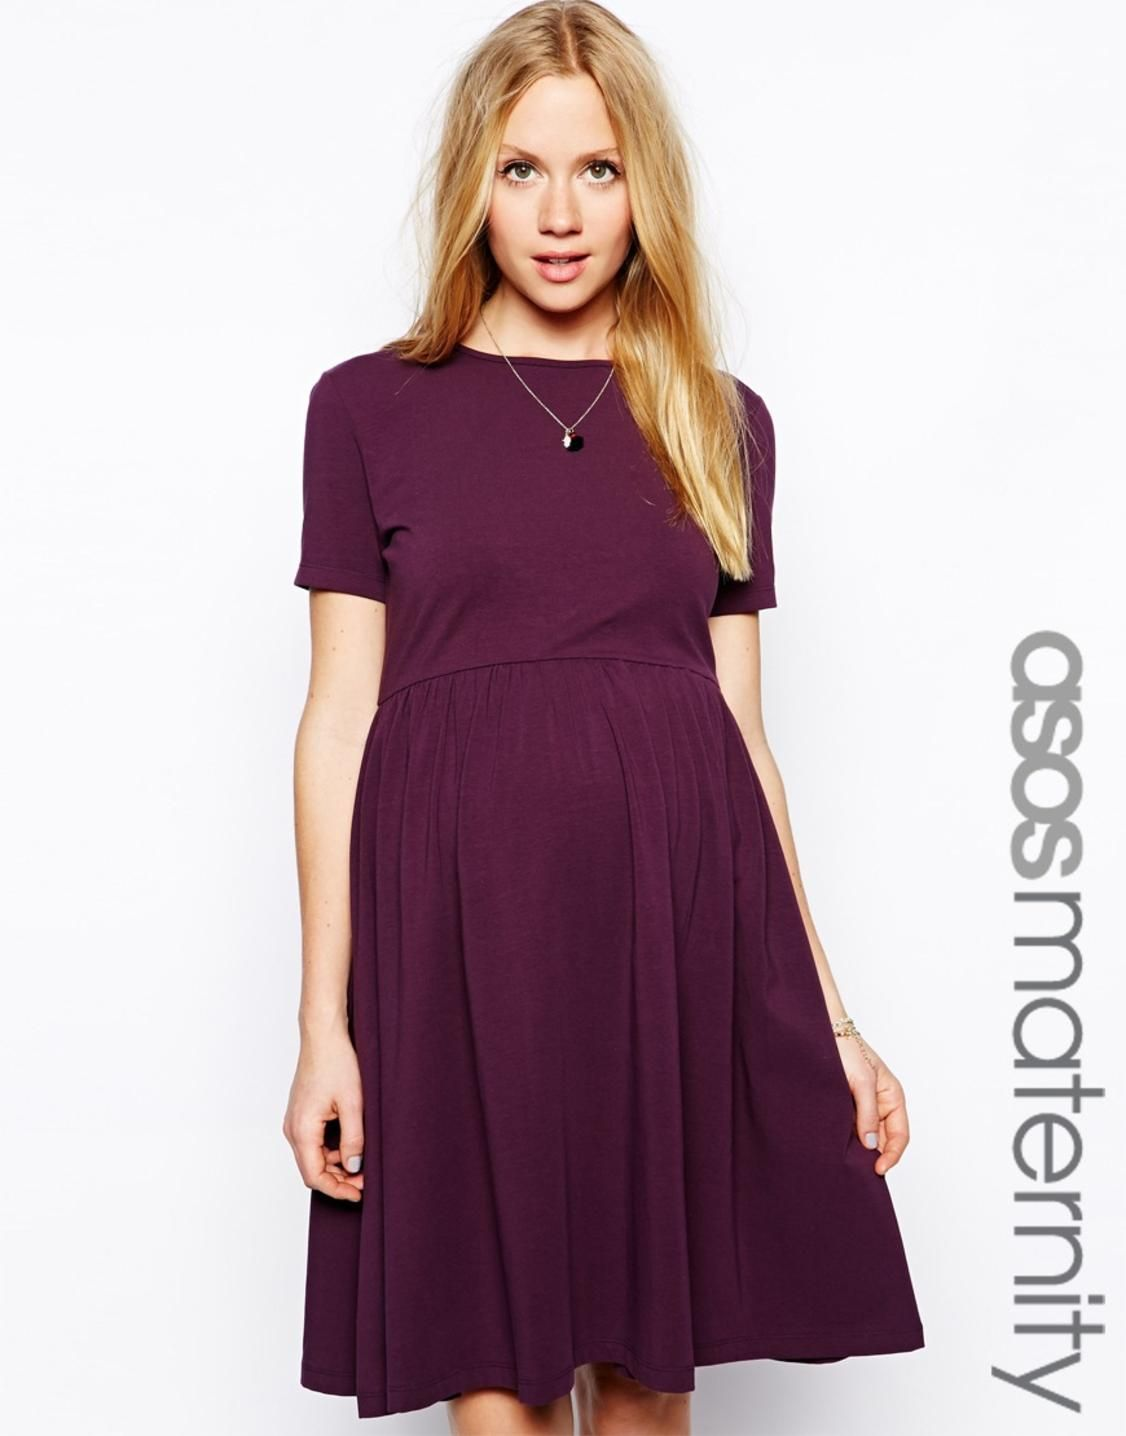 973d7cd4f37a ASOS Maternity Skater Dress With Slash Neck And Short Sleeves  http://picvpic.